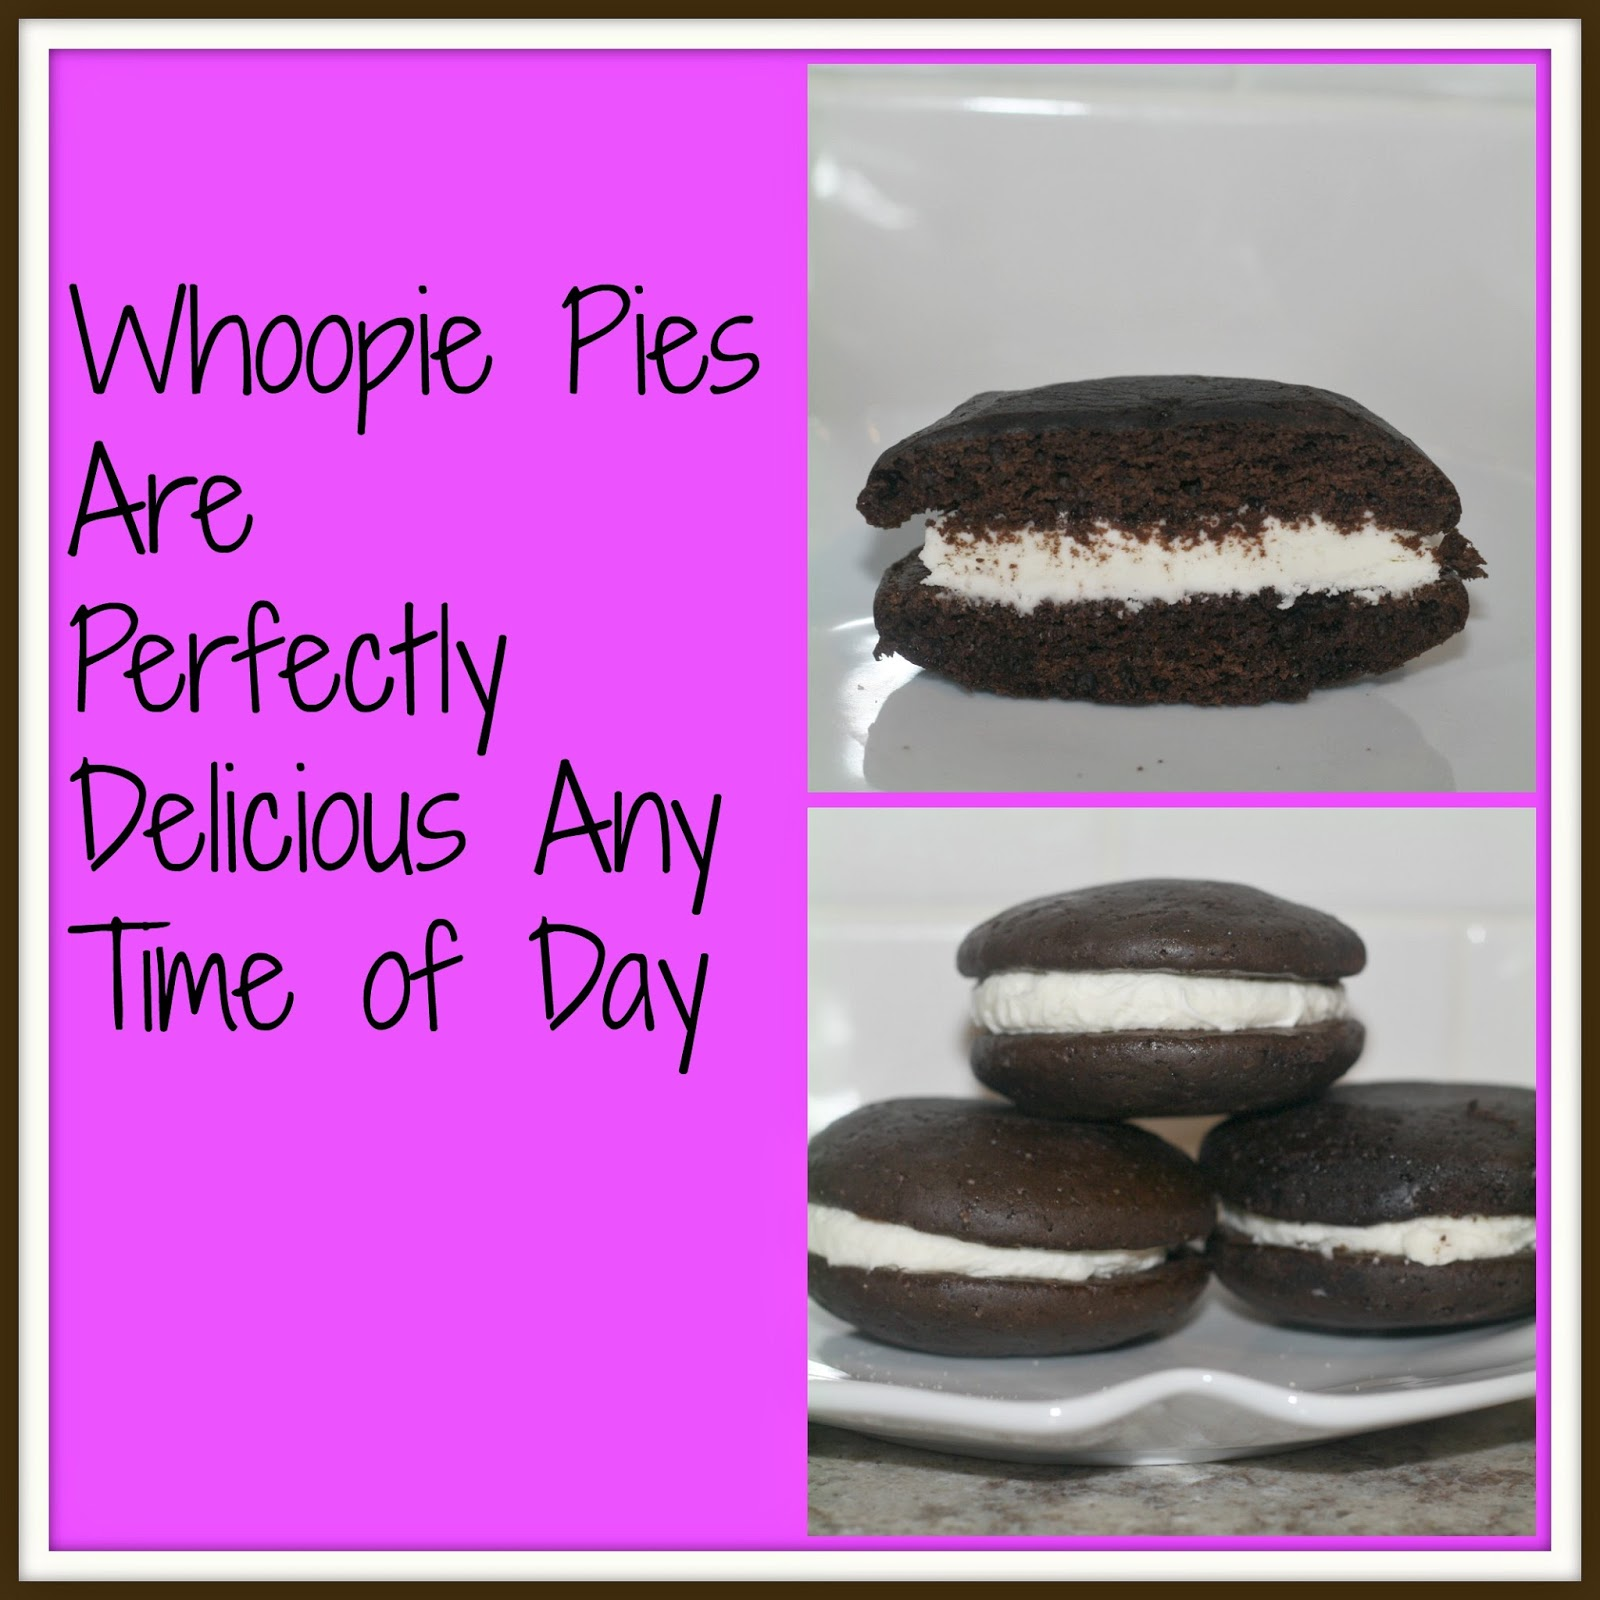 Sammi S Blog Of Life Whoopie Pies From Black Cat Cookie Company